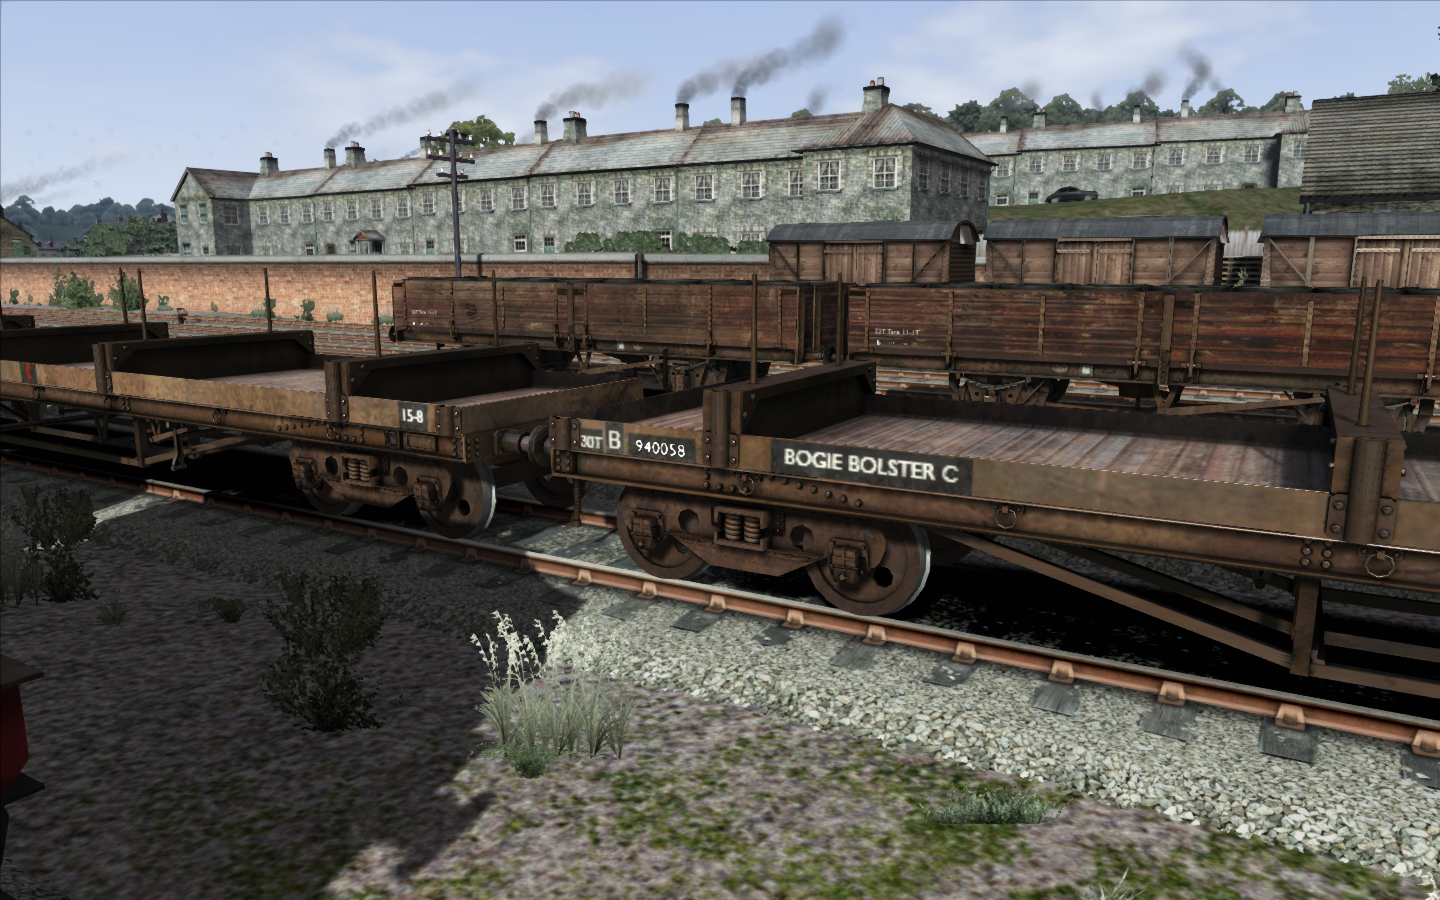 Screenshot_Bath Green Park To Templecombe_51.29274--2.44324_10-51-17.png